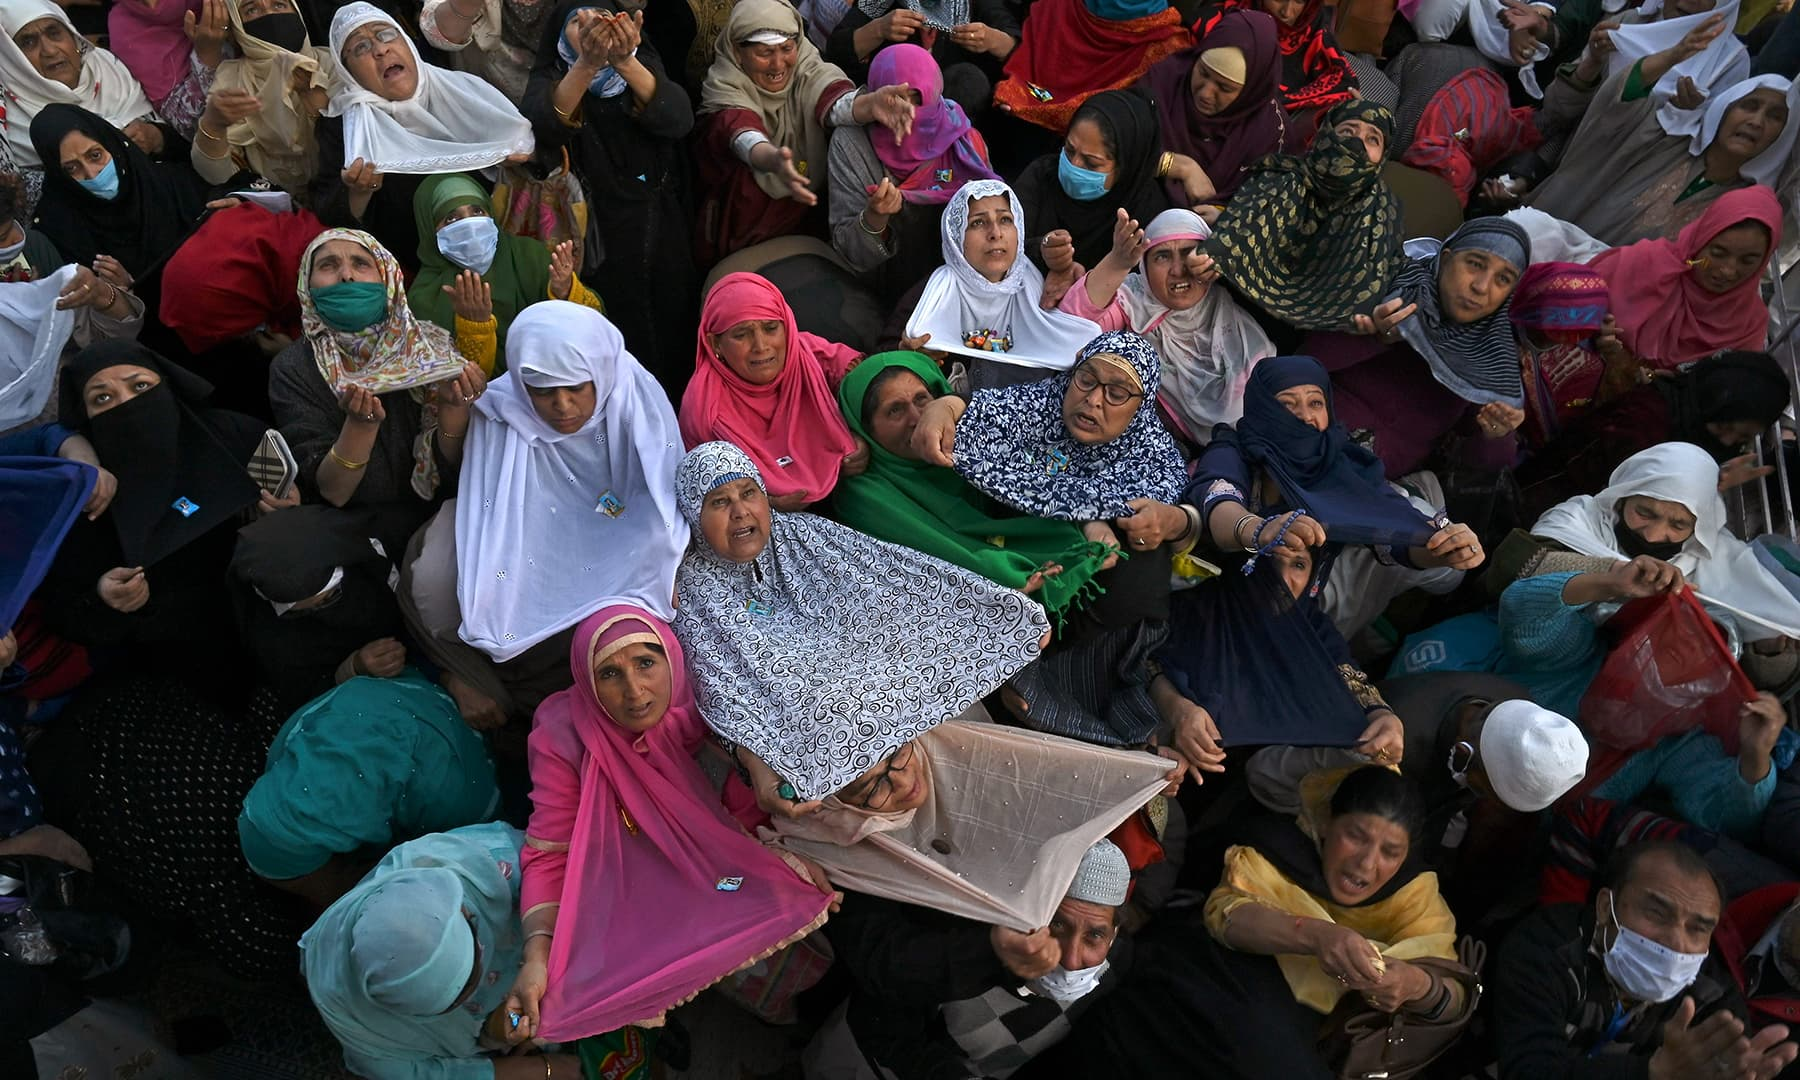 Devotees react during Eid-i-Miladun Nabi celebration at the Hazratbal Shrine in Srinagar, Indian-occupied Kashmir on October 30. — AFP